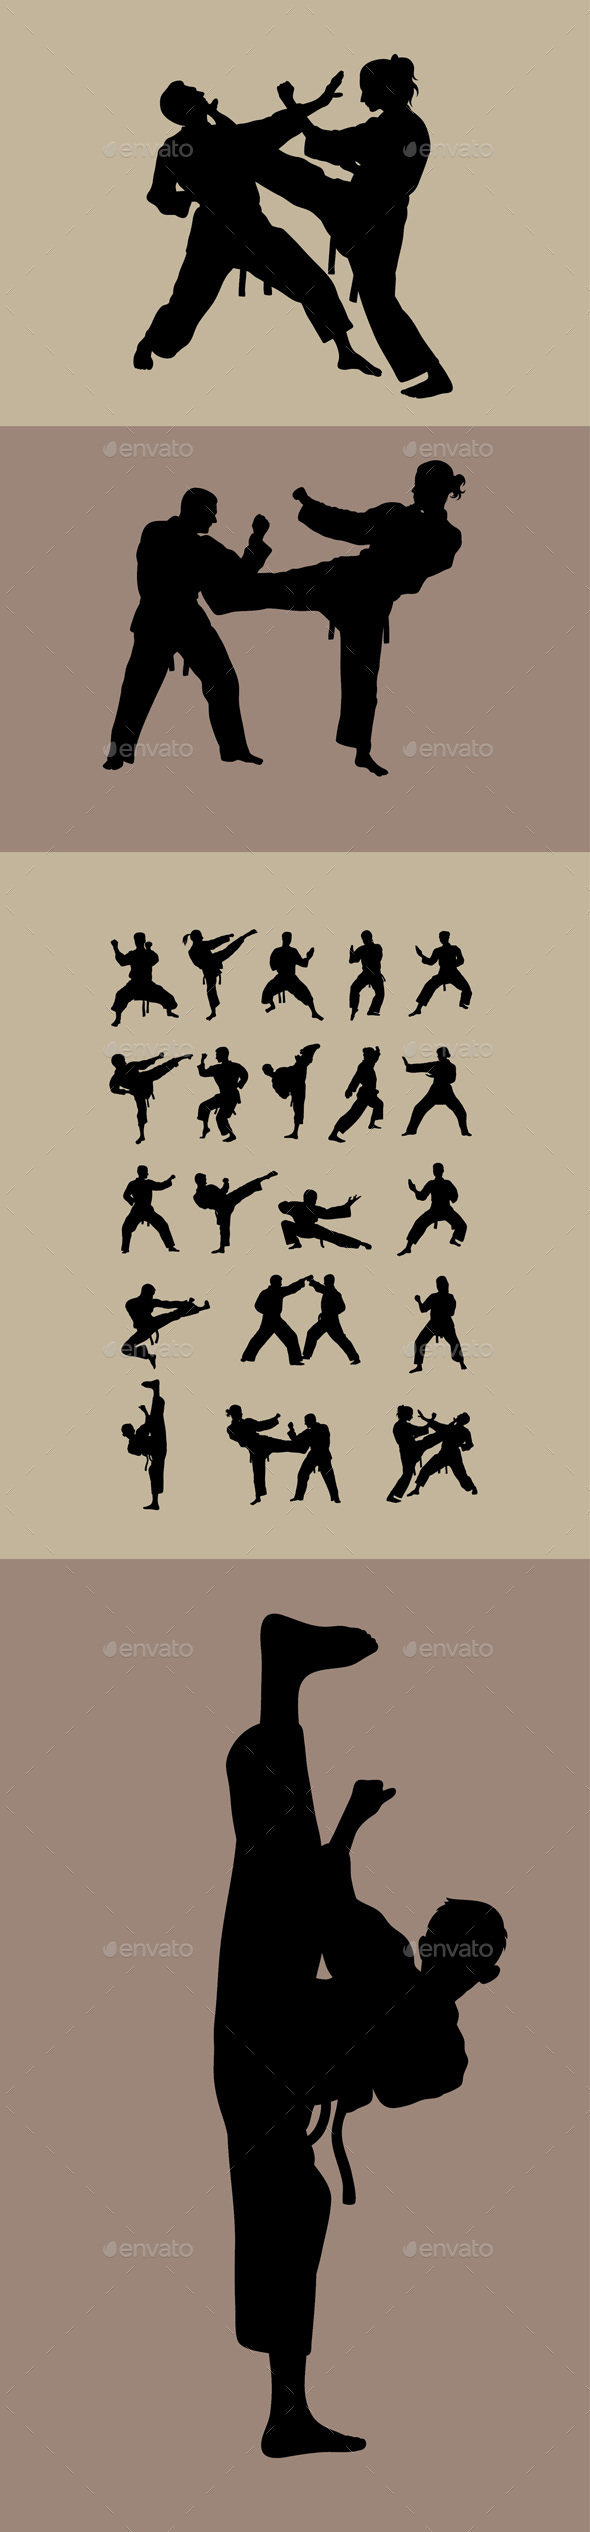 Taekwondo  Karate and Taekwondo Silhouettes - Sports/Activity Conceptual